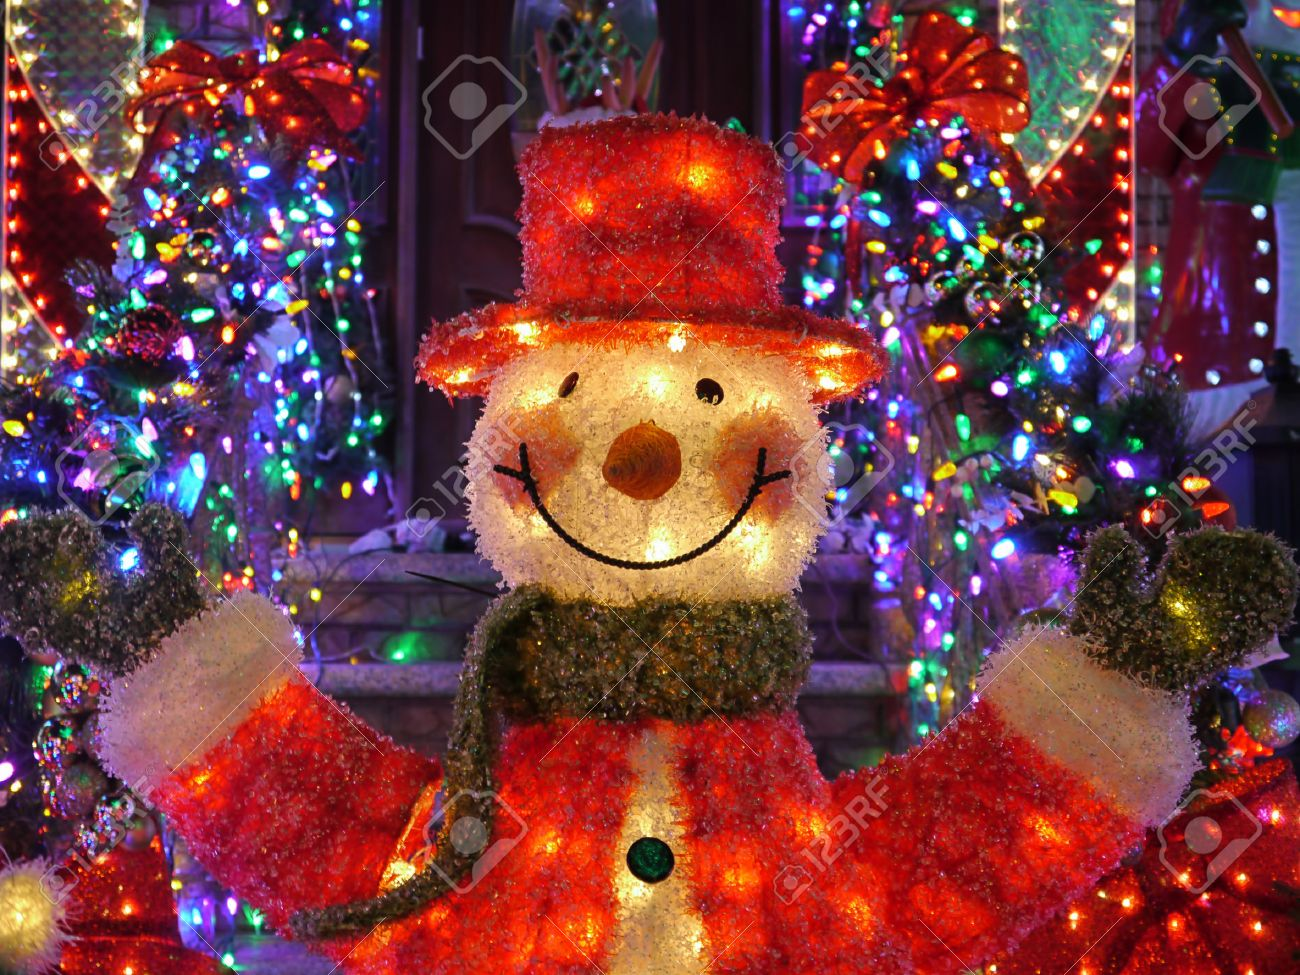 Outdoor Snowman Christmas Decorations.Christmas Outdoor Christmas Decorations Snowman Lights Up House